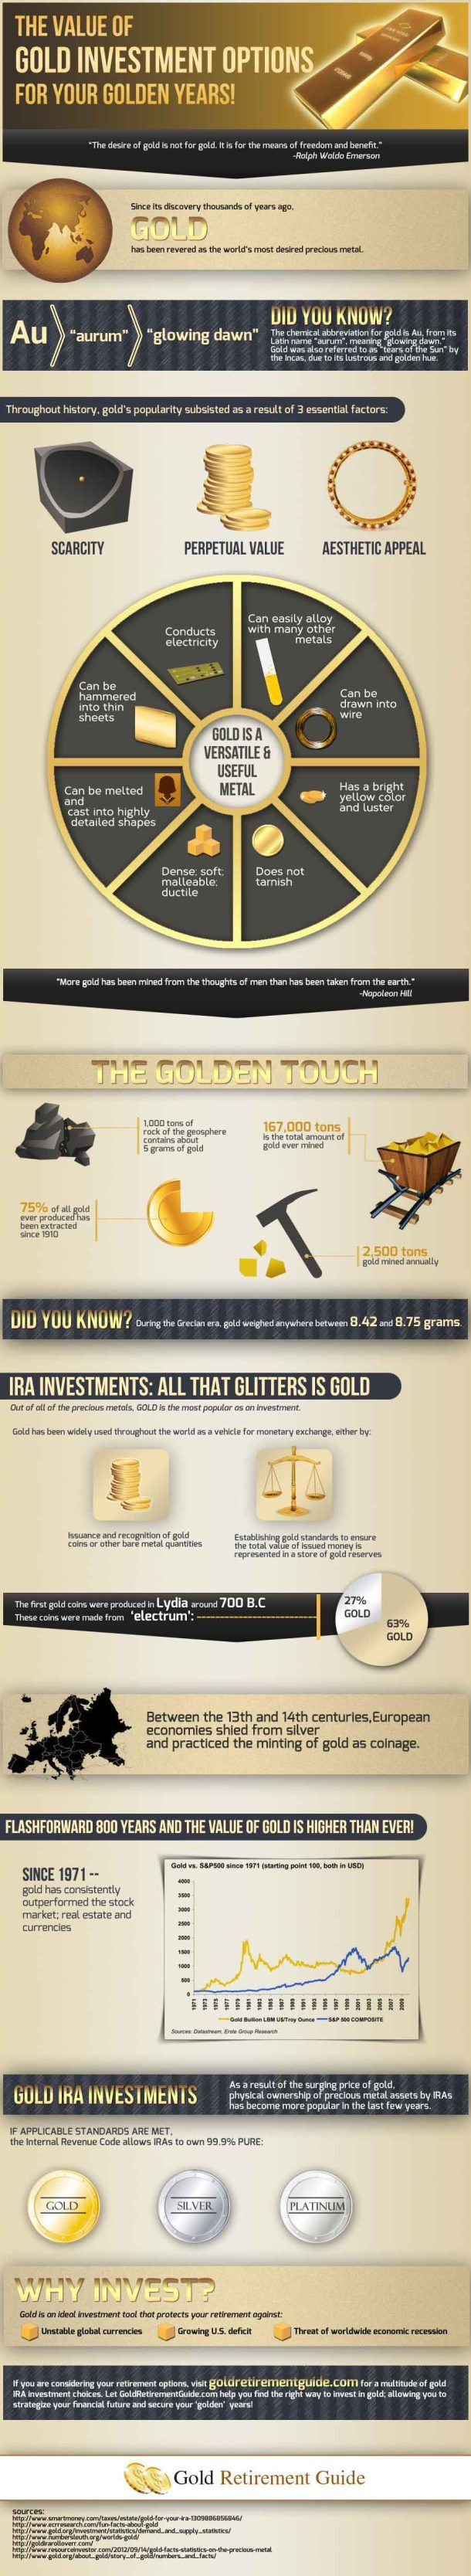 The Value of Gold Investment Options For Your Golden Years [INFOGRAPHIC] http://www.karatbars.com/landing/?s=ewise10